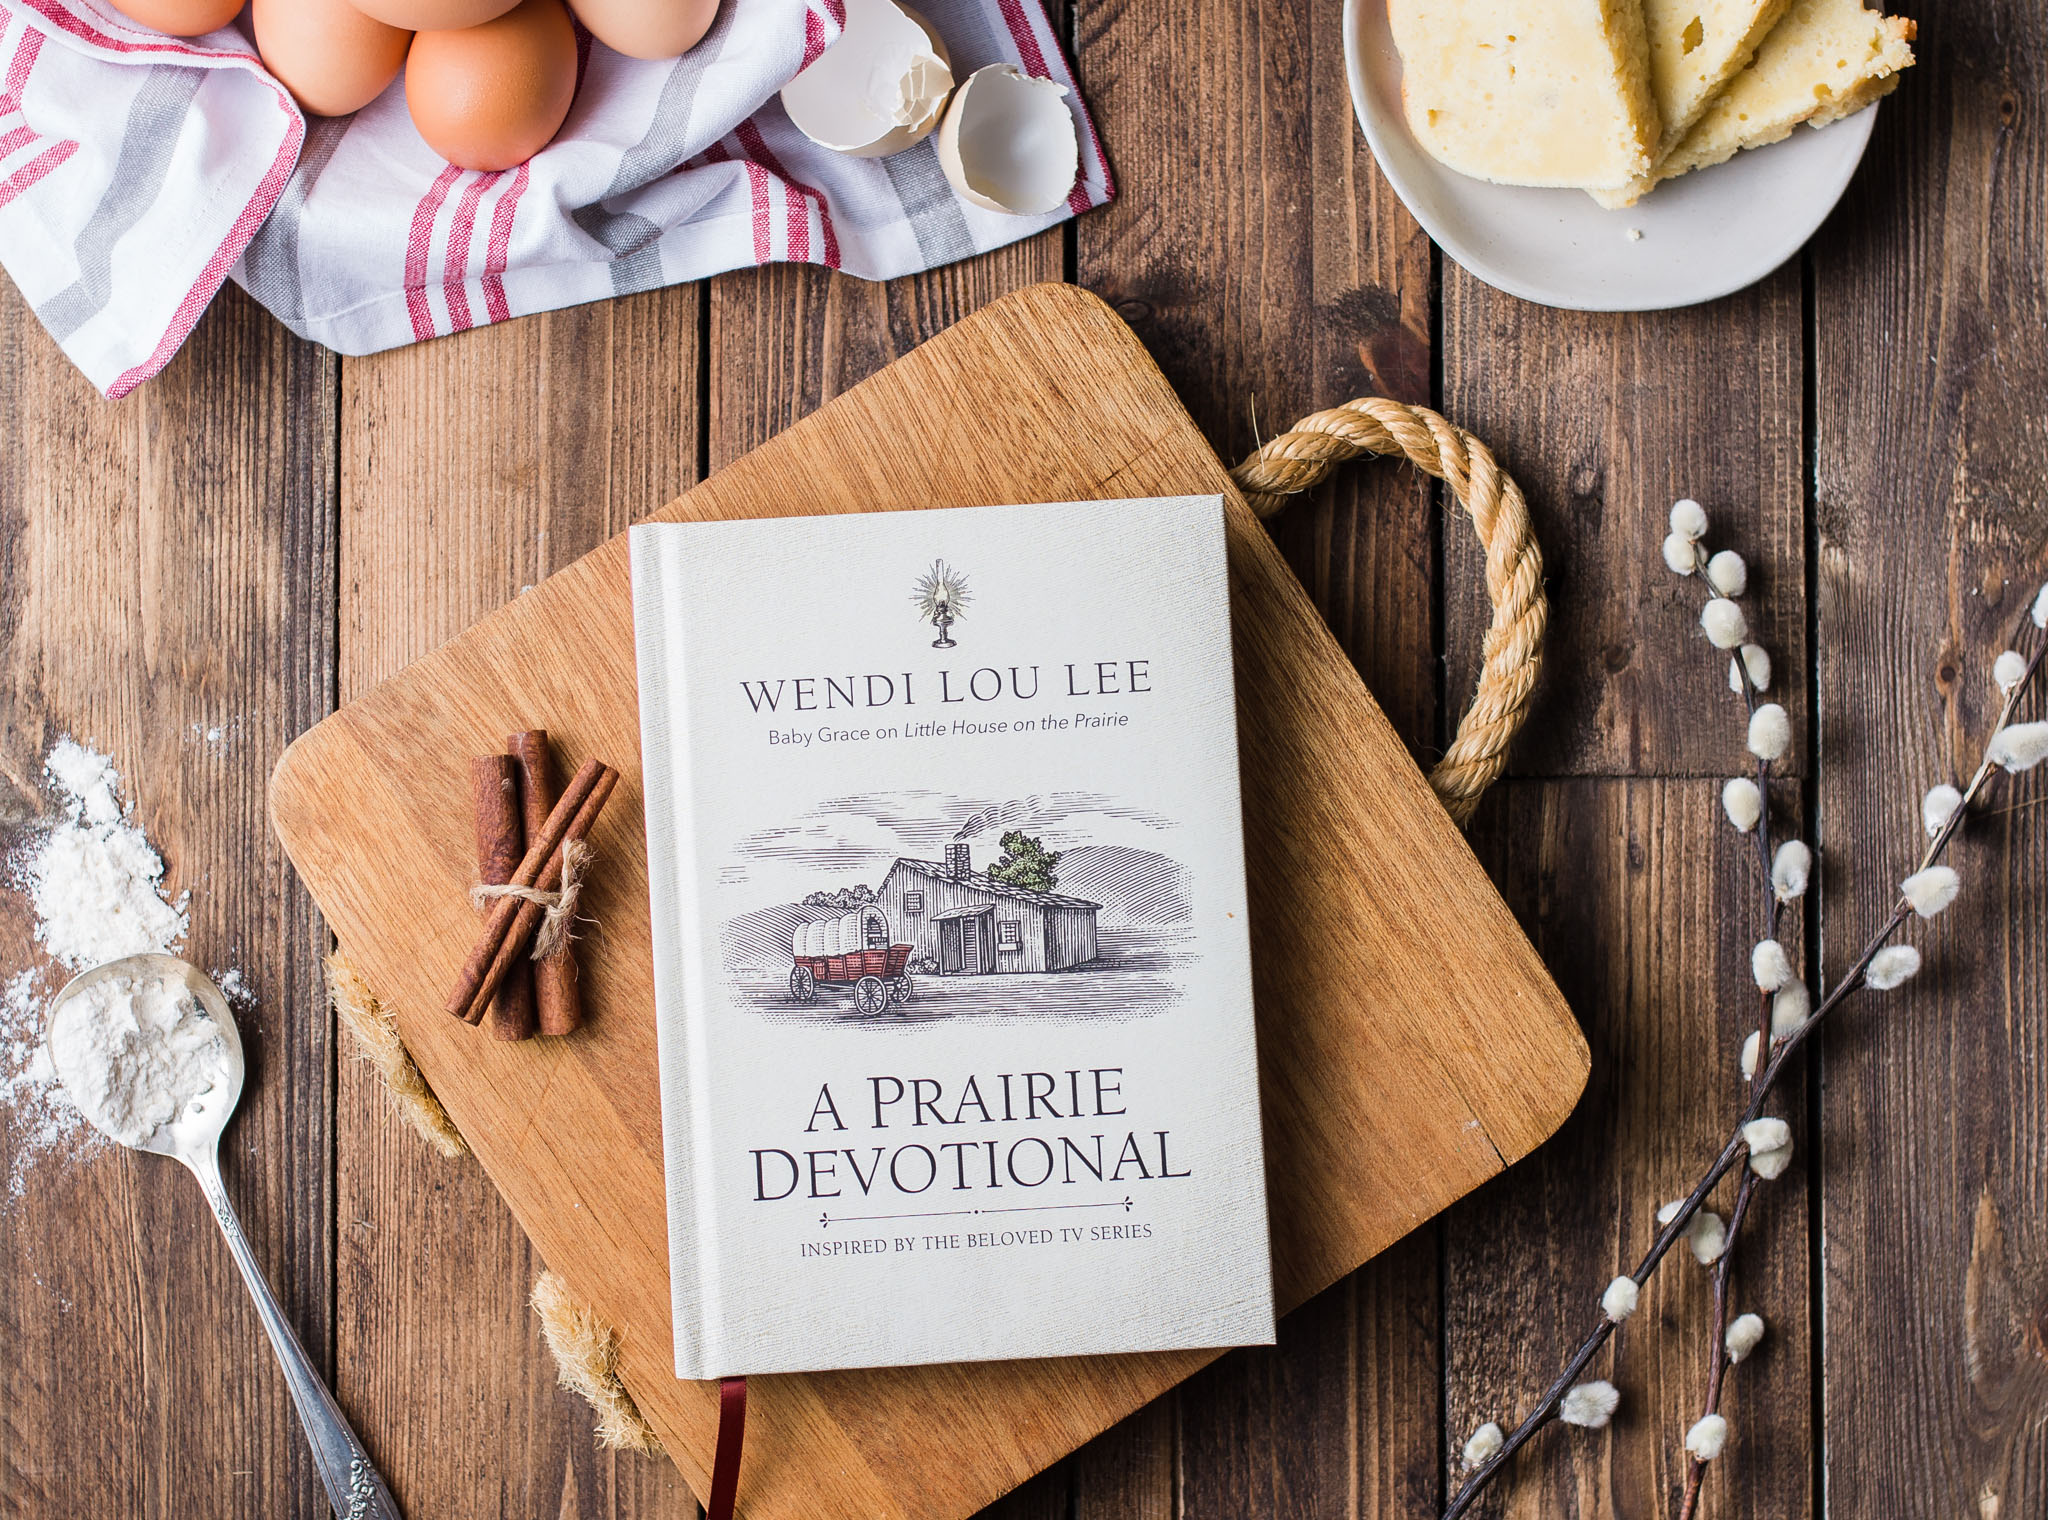 Wendi Lou Lee: A Prairie Devotional